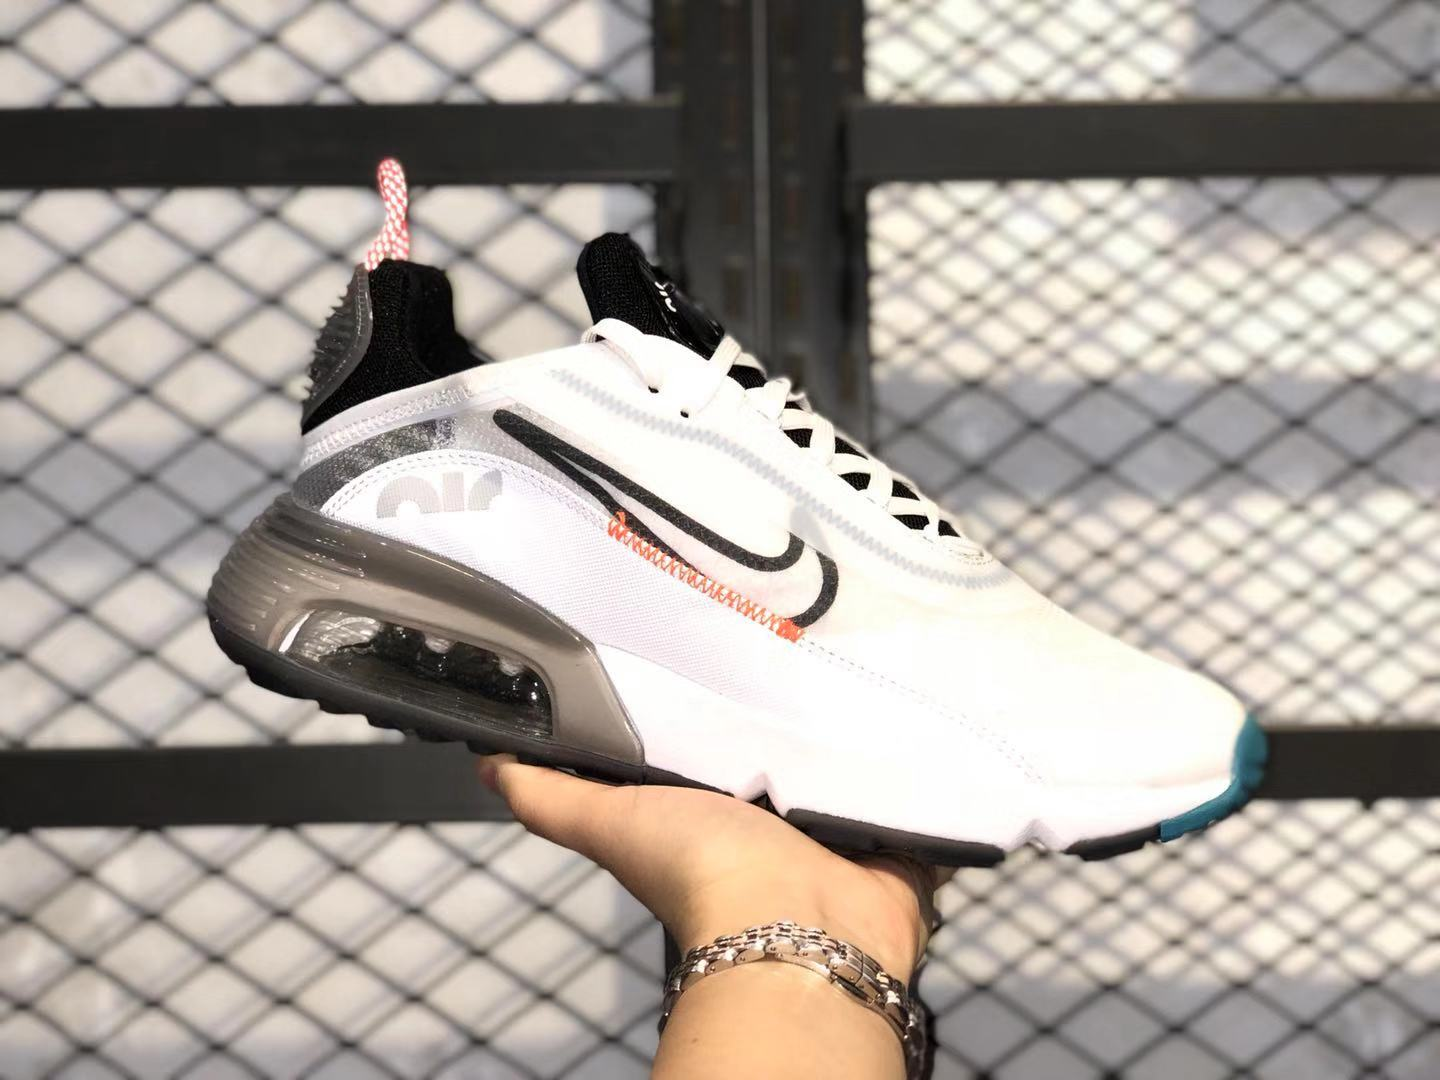 Nike Air Max Vapormax 2090 CT7695-100 White/Black-Red Running Shoes Online Buy